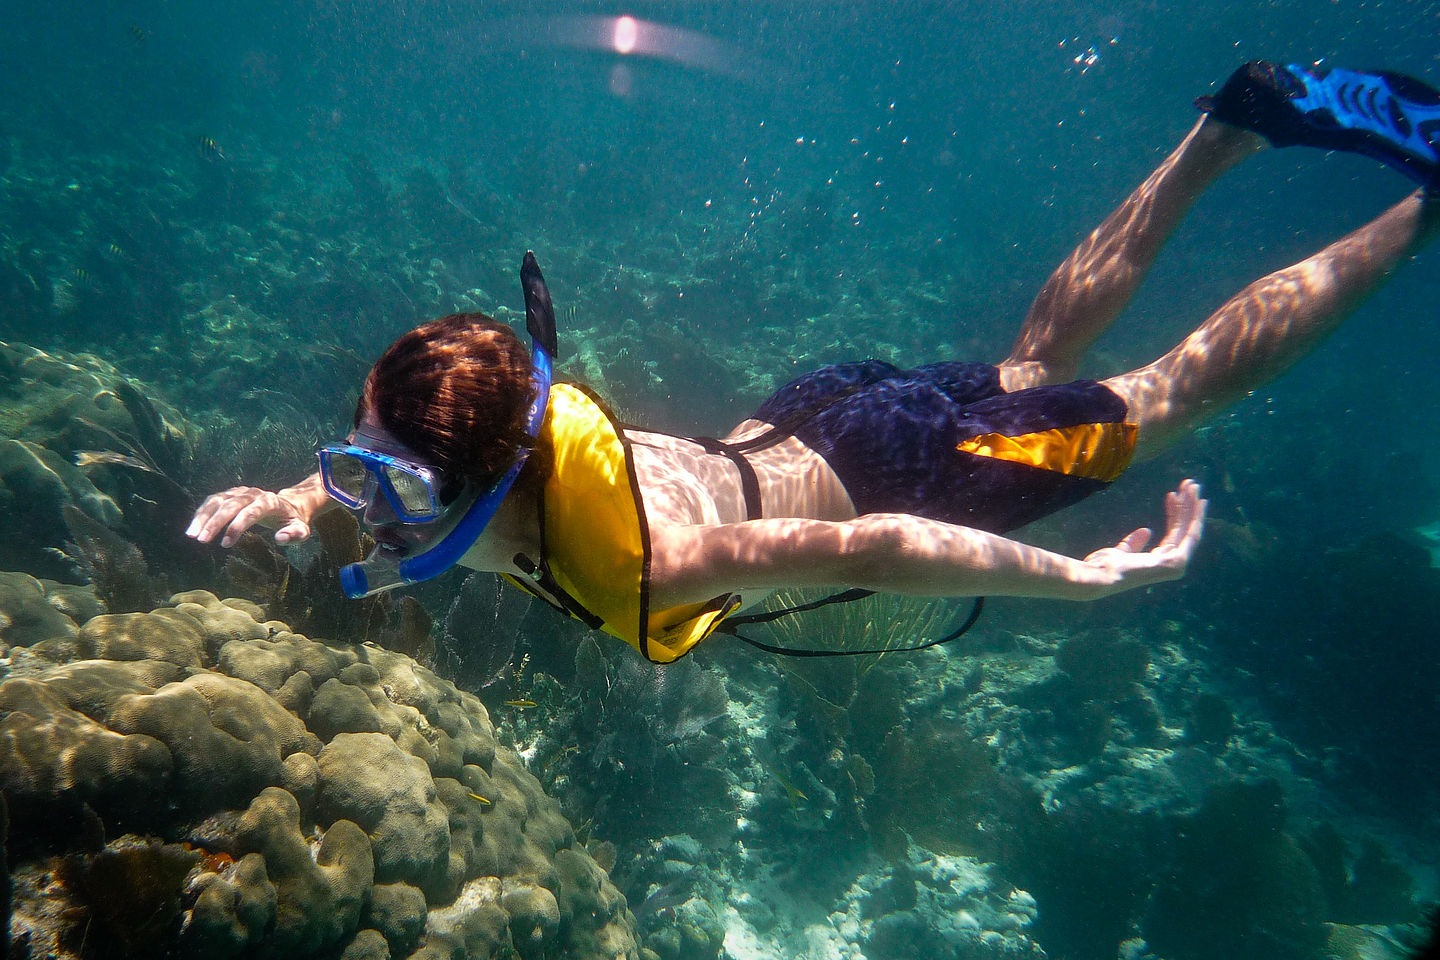 tommy snorkeling   ajg john pennekamp state park fl   lolo u0027s extreme cross country rv trips  rh   cross country trips